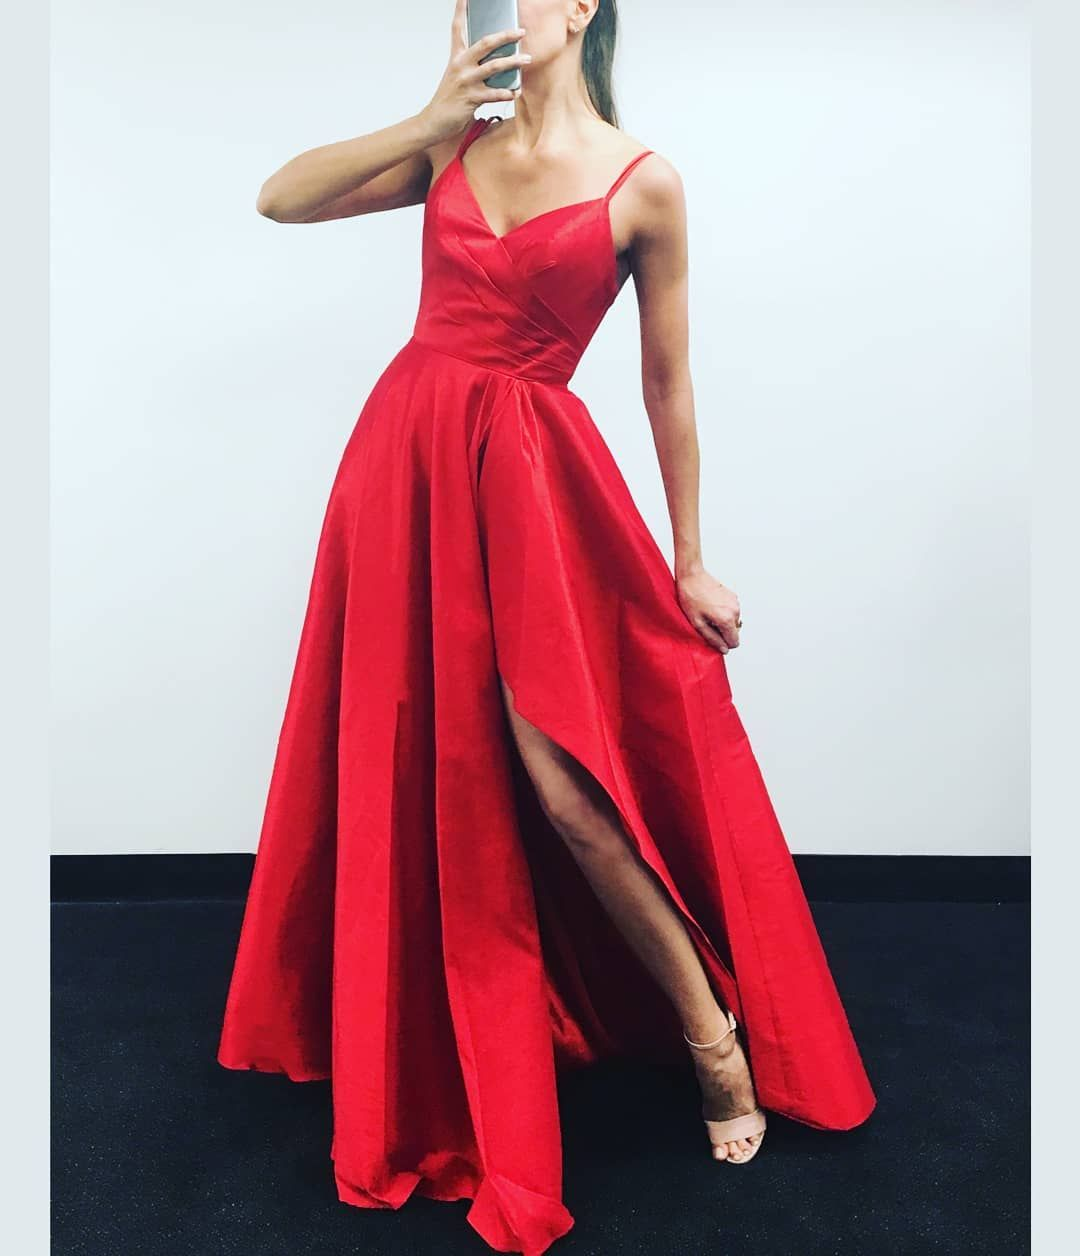 Simple Red Prom Dress with Slit | Evening & Prom Dresses | Pinterest ...